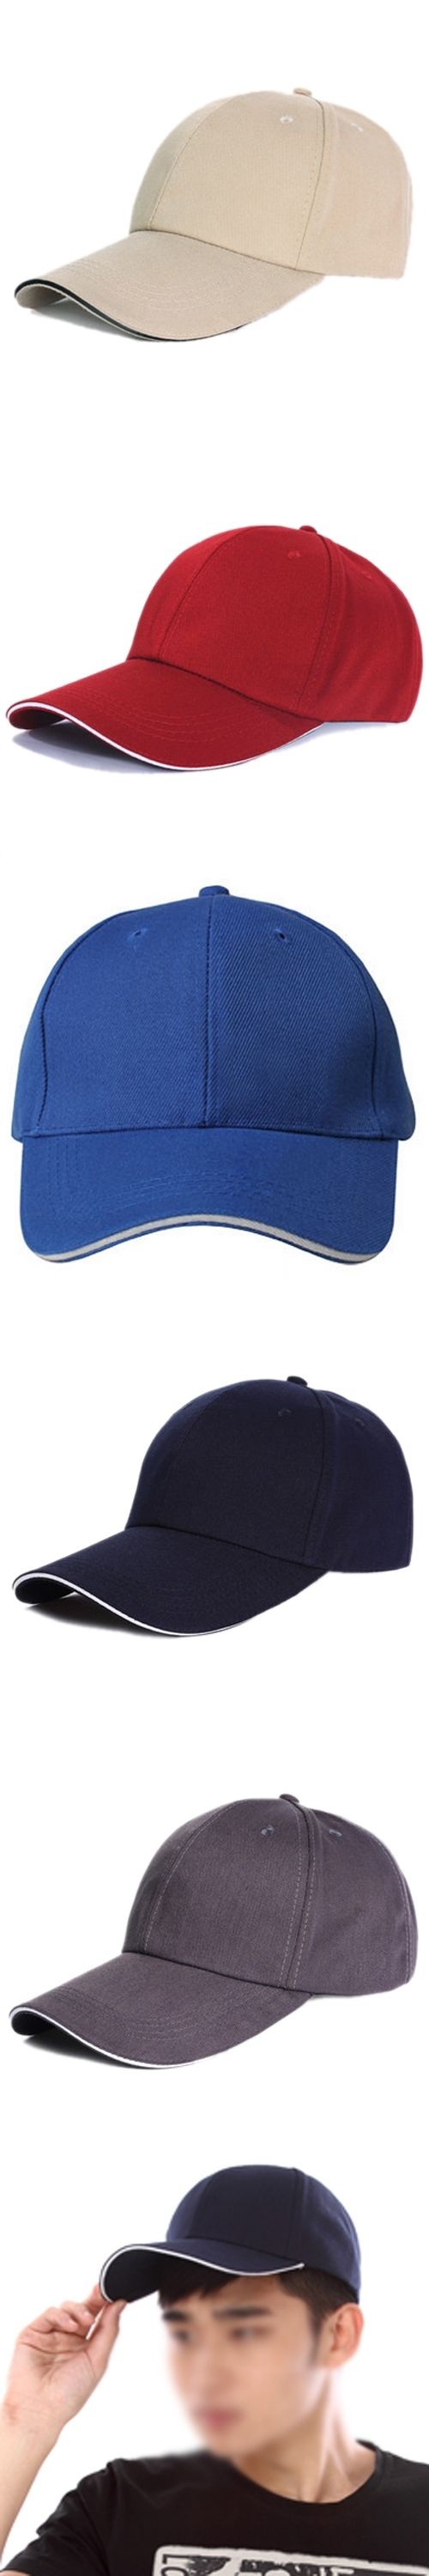 Hot Plain Baseball Cap Mens Ladies Adult Hat Summer